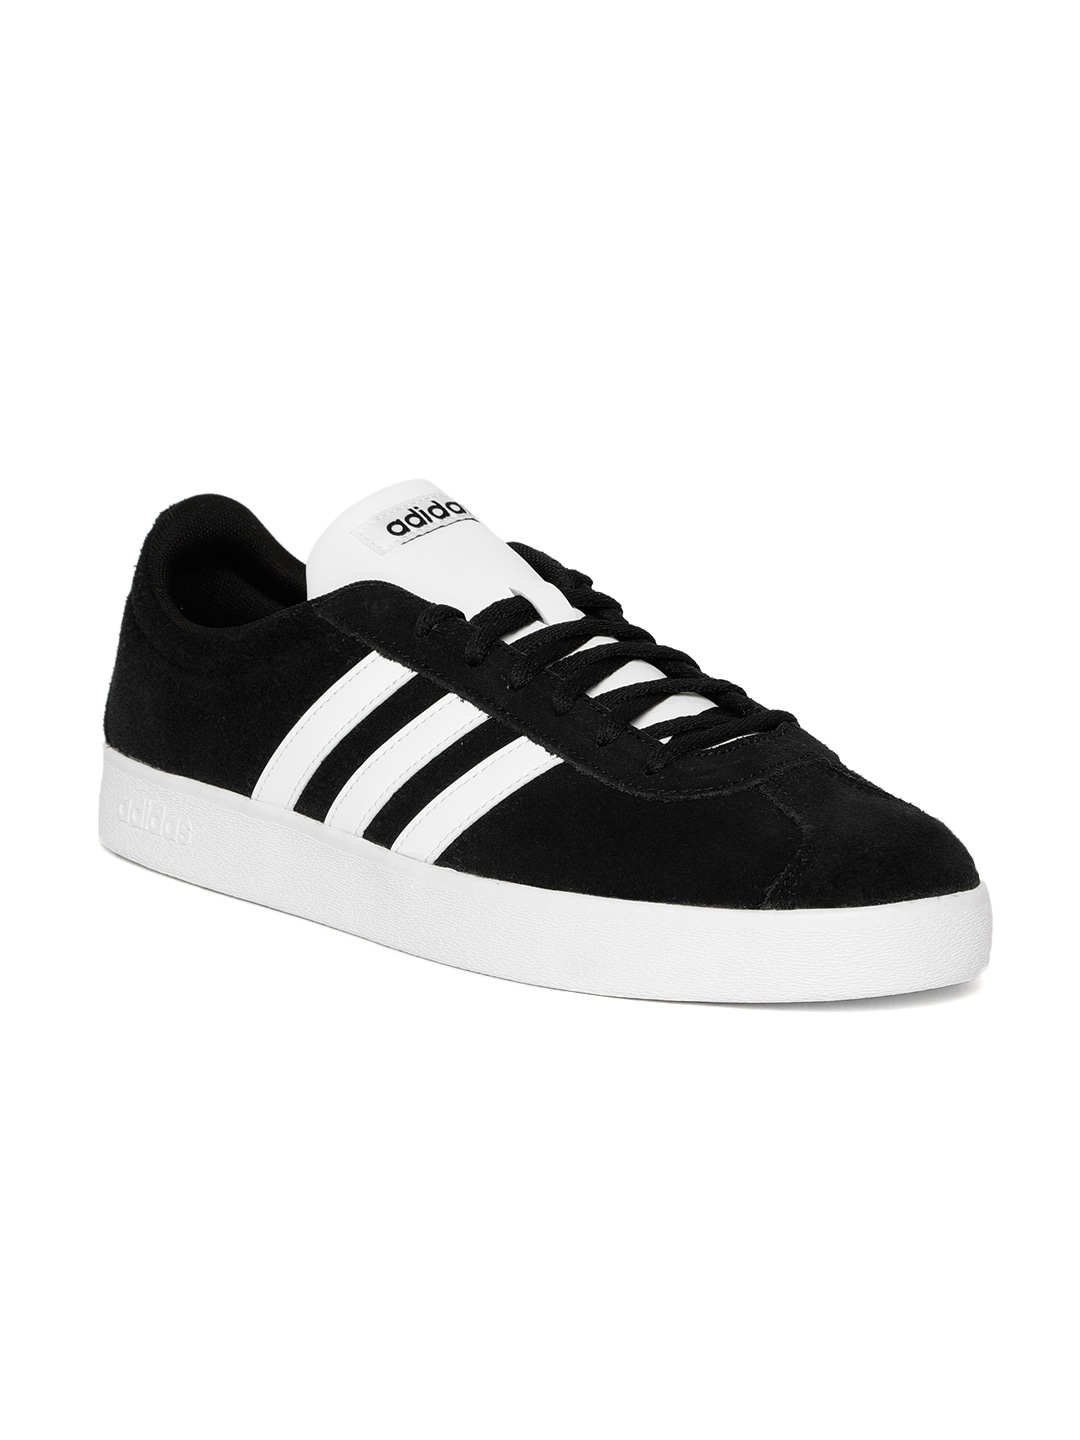 reputable site e9b33 ef6f9 Mens Adidas Sports Shoes - Buy Adidas Sports Shoes for Men Online in India